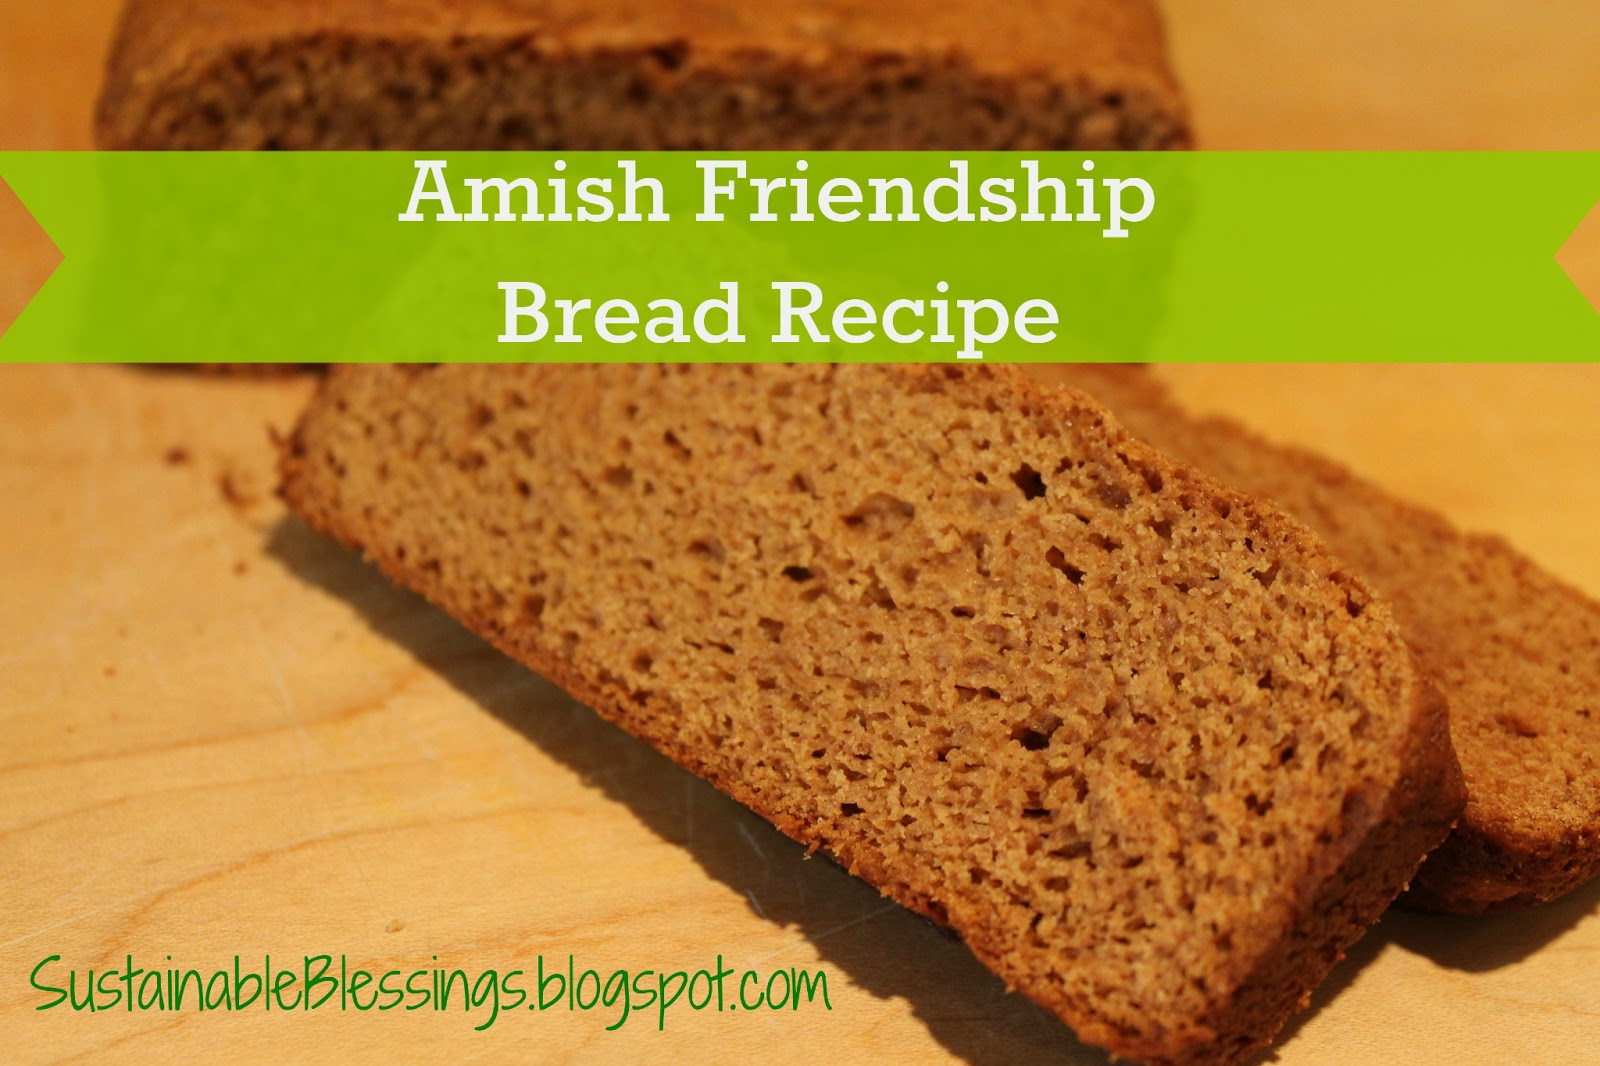 amish friendship bread 1 cup amish friendship starter 2 cups